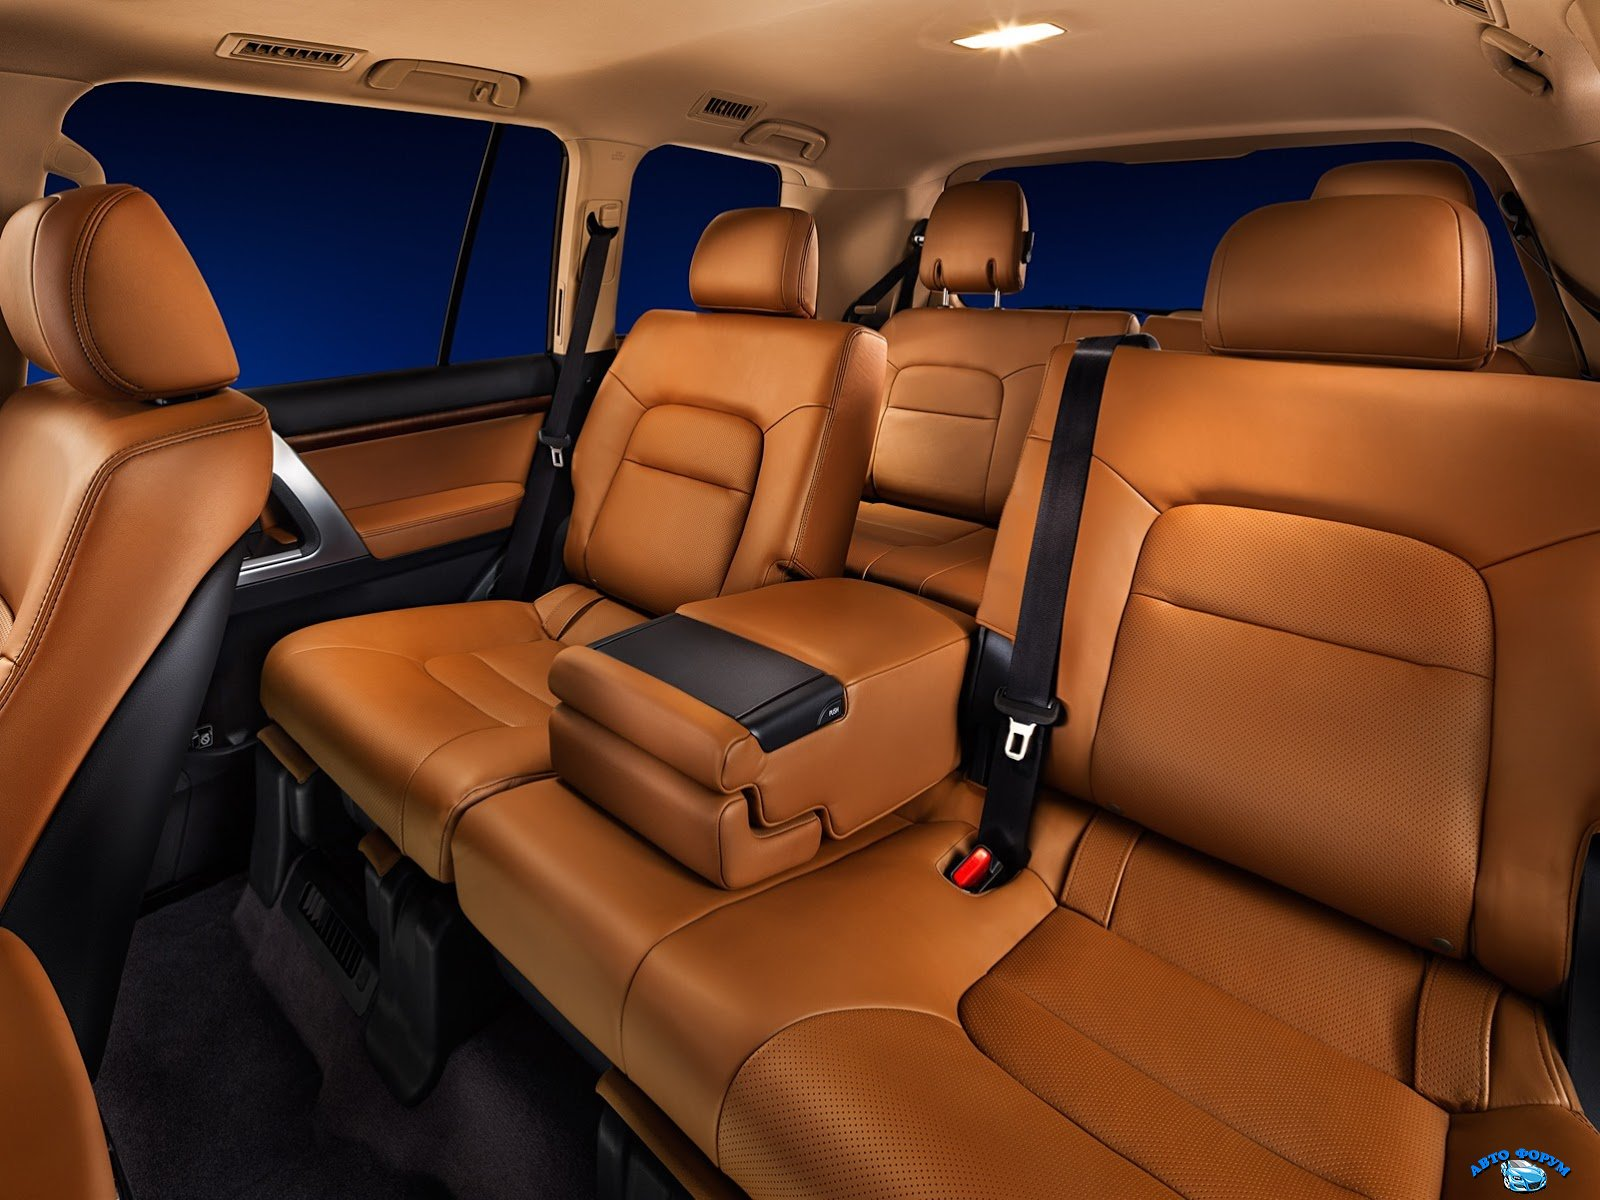 russia-gets-exclusive-toyota-land-cruiser-200-brownstone-edition_4.jpg